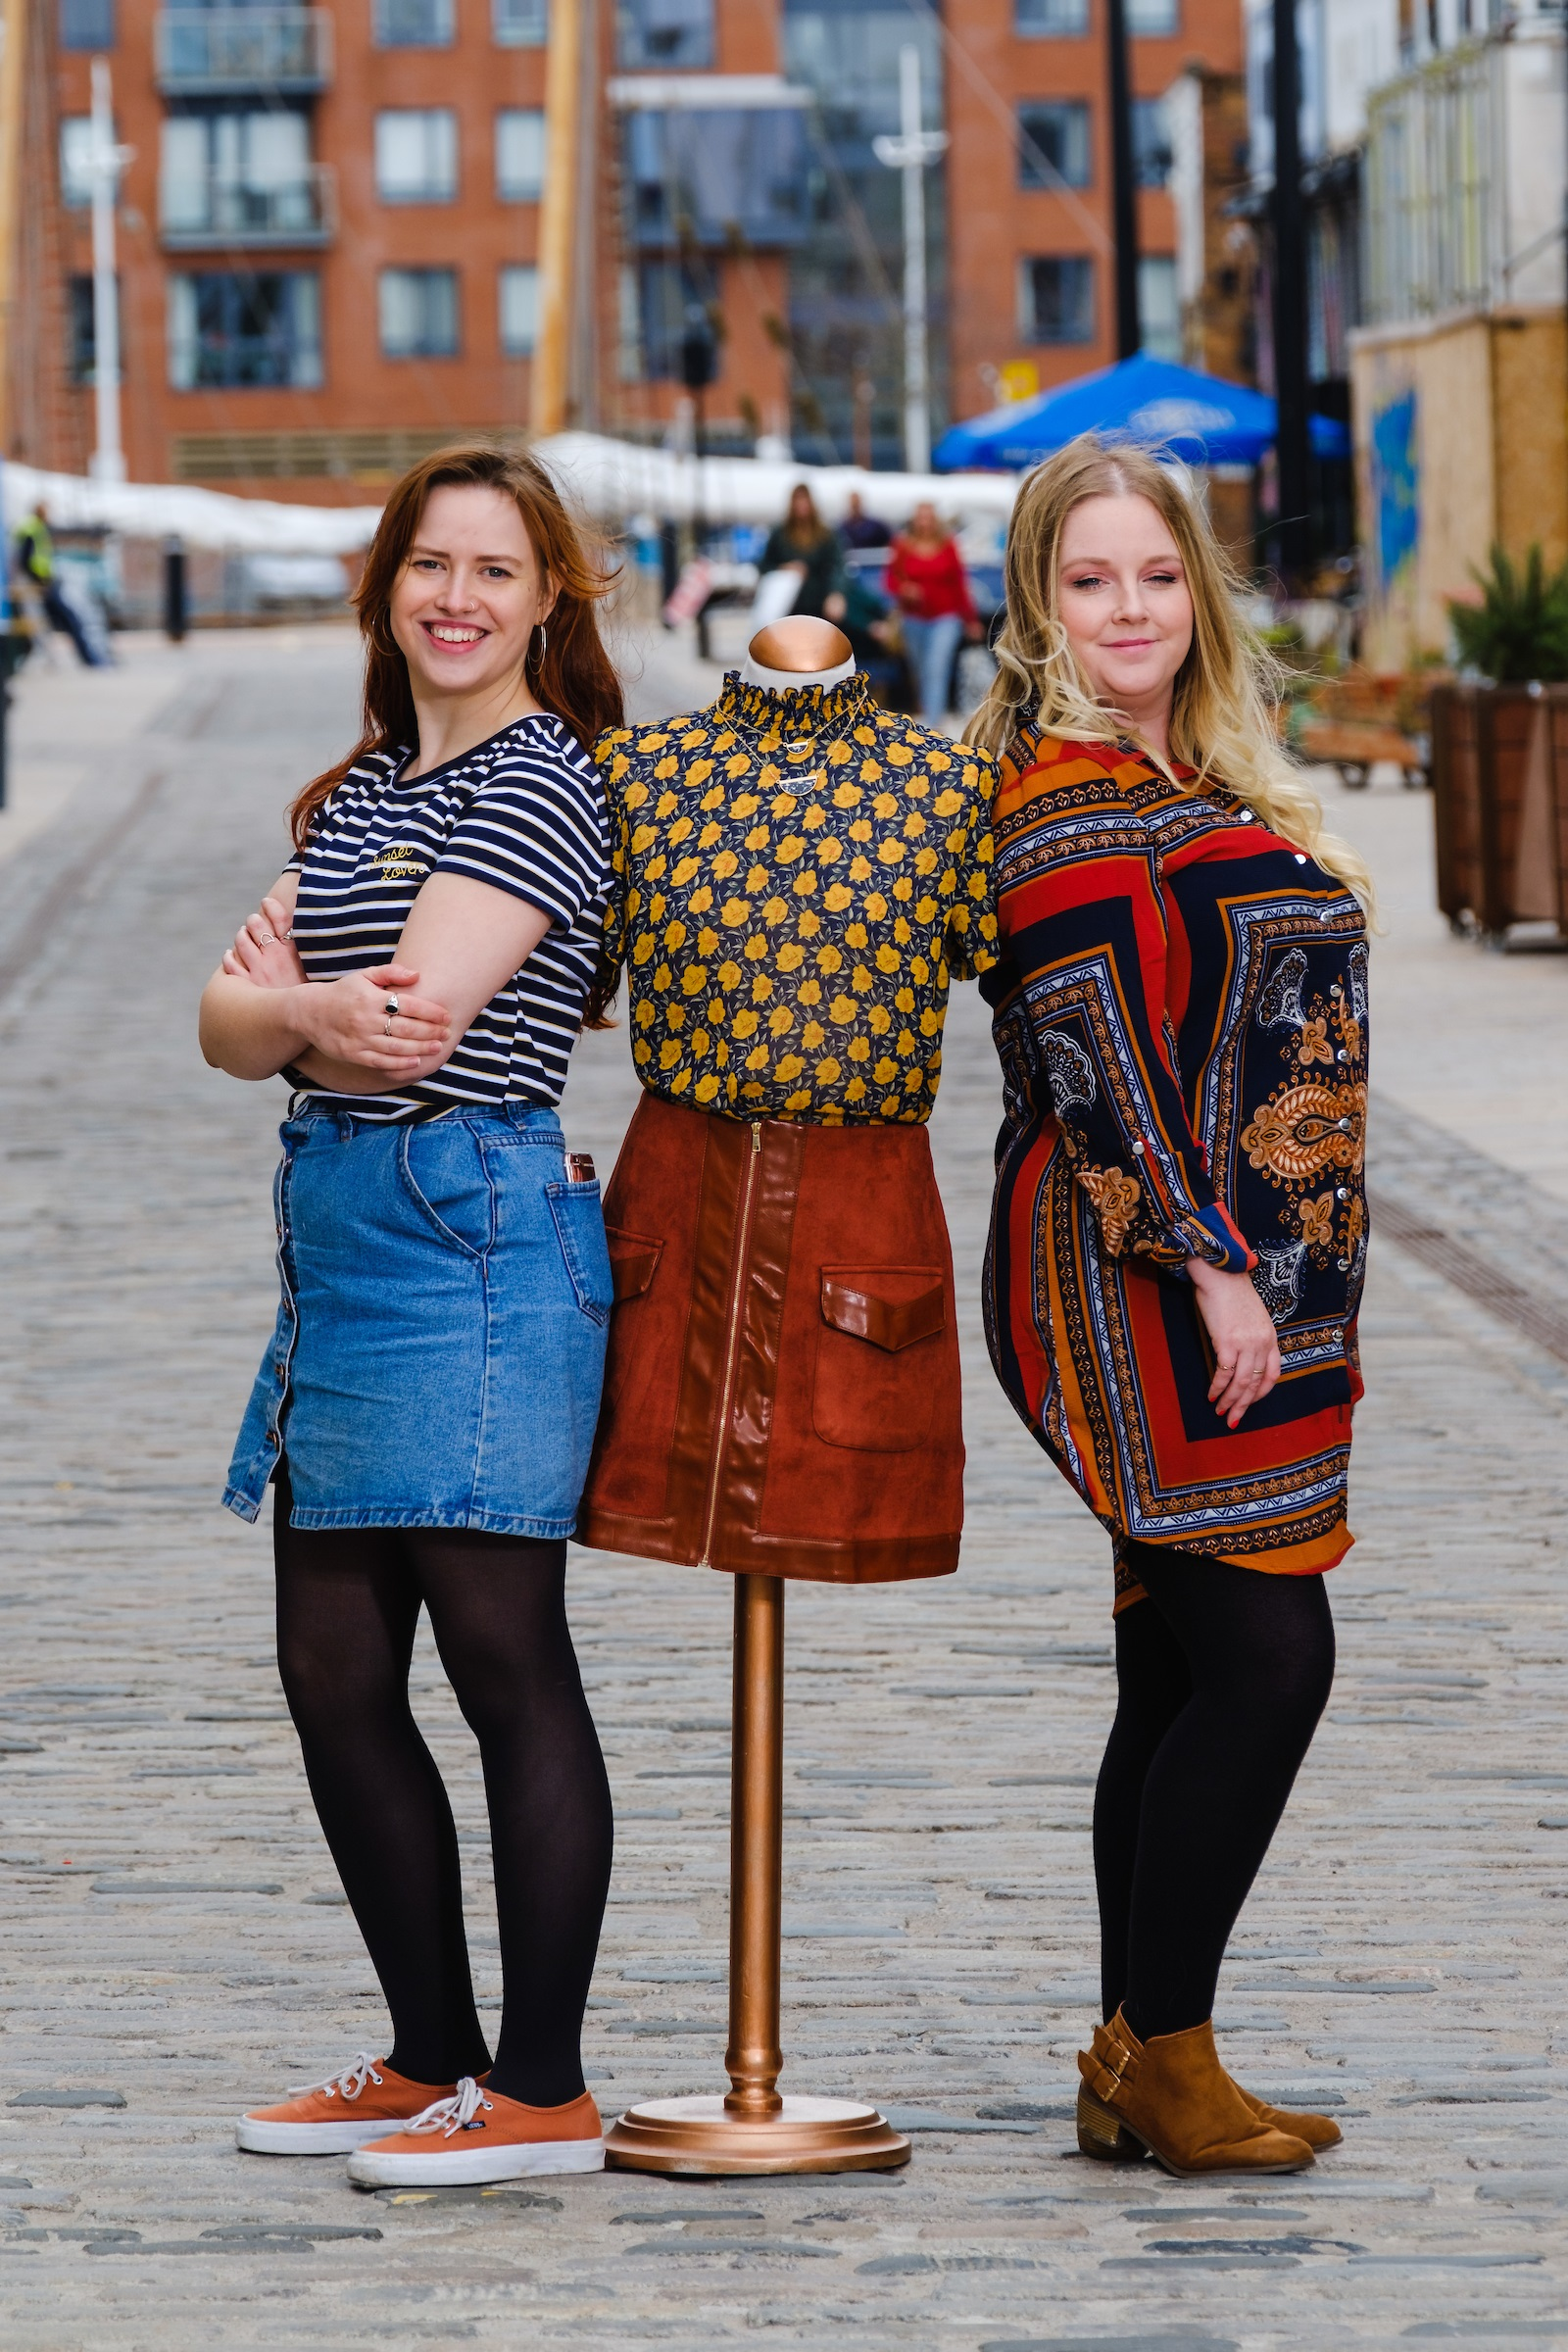 Tessies owner Nicola Gibbons, right, and Manager Anna Carter are excited about joining the creative community in the trendy Fruit Market district.